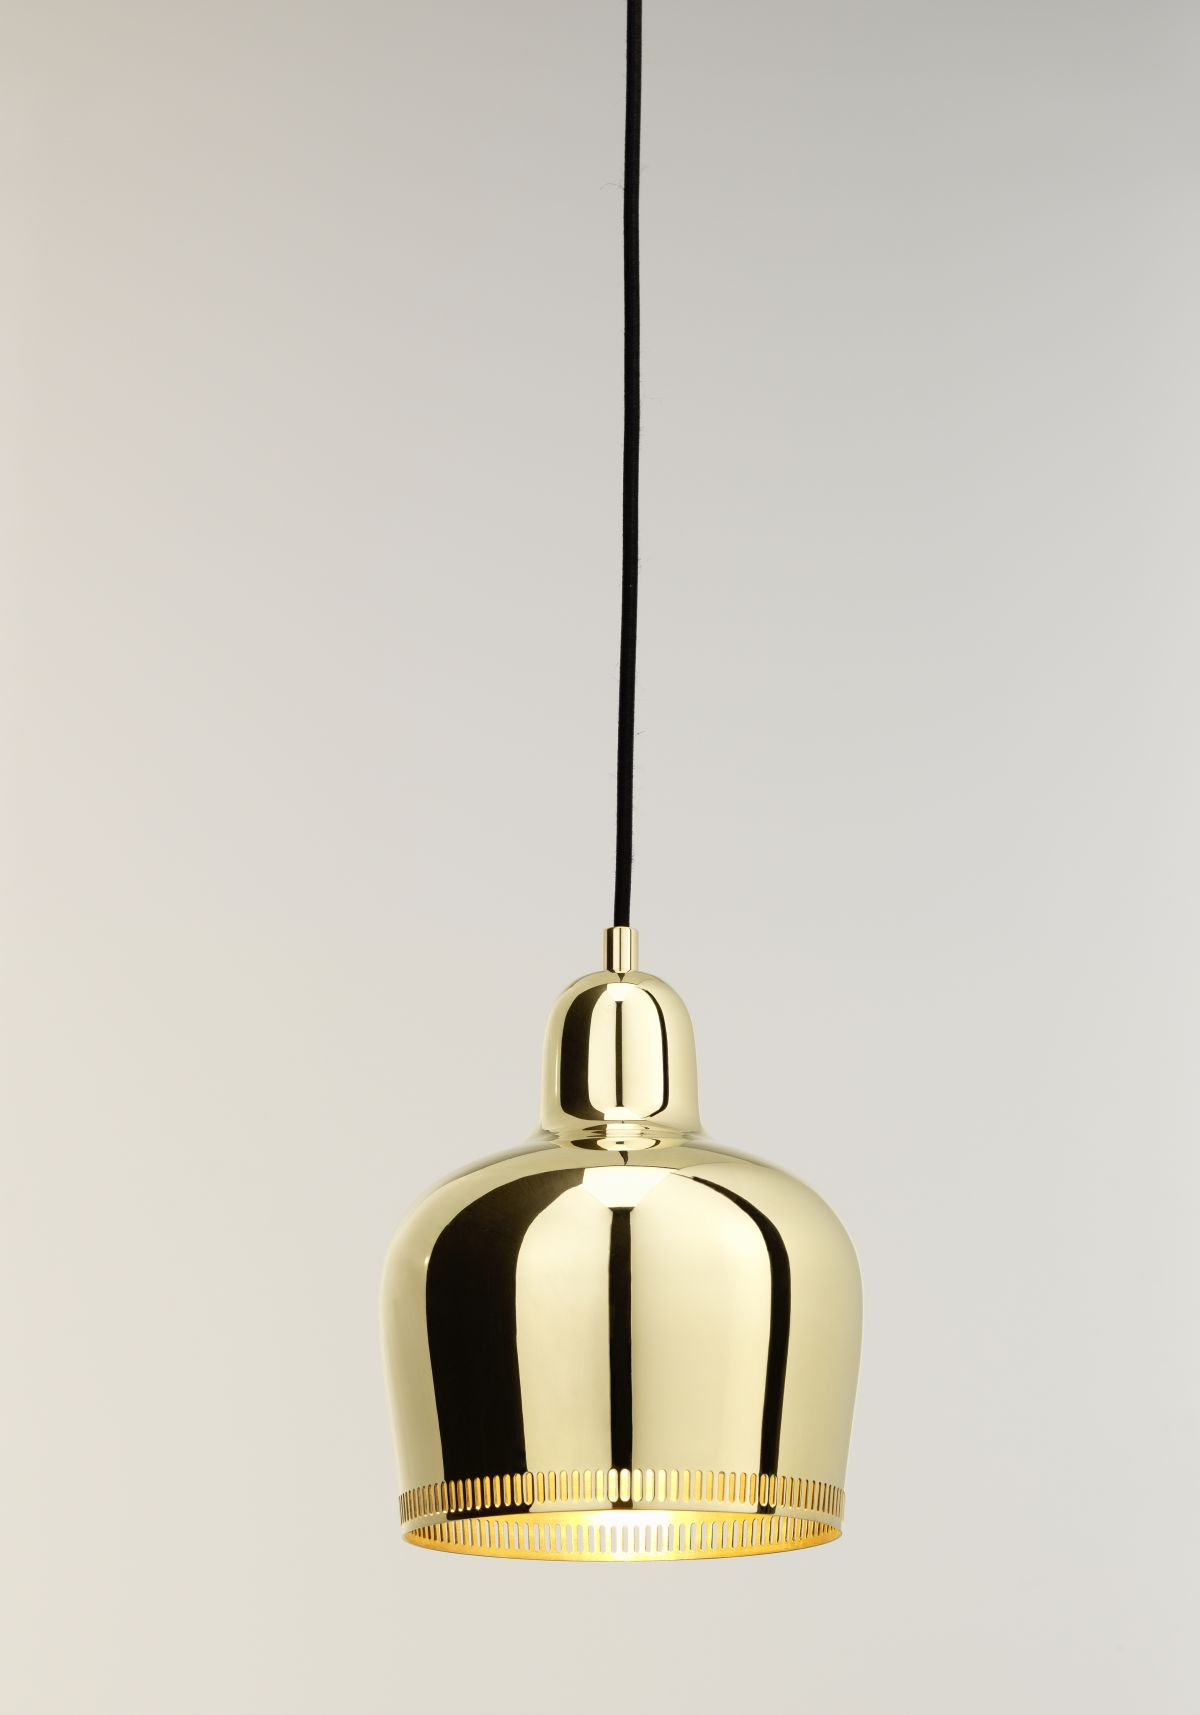 Pendant-Light-A330S-Golden-Bell-Savoy_On